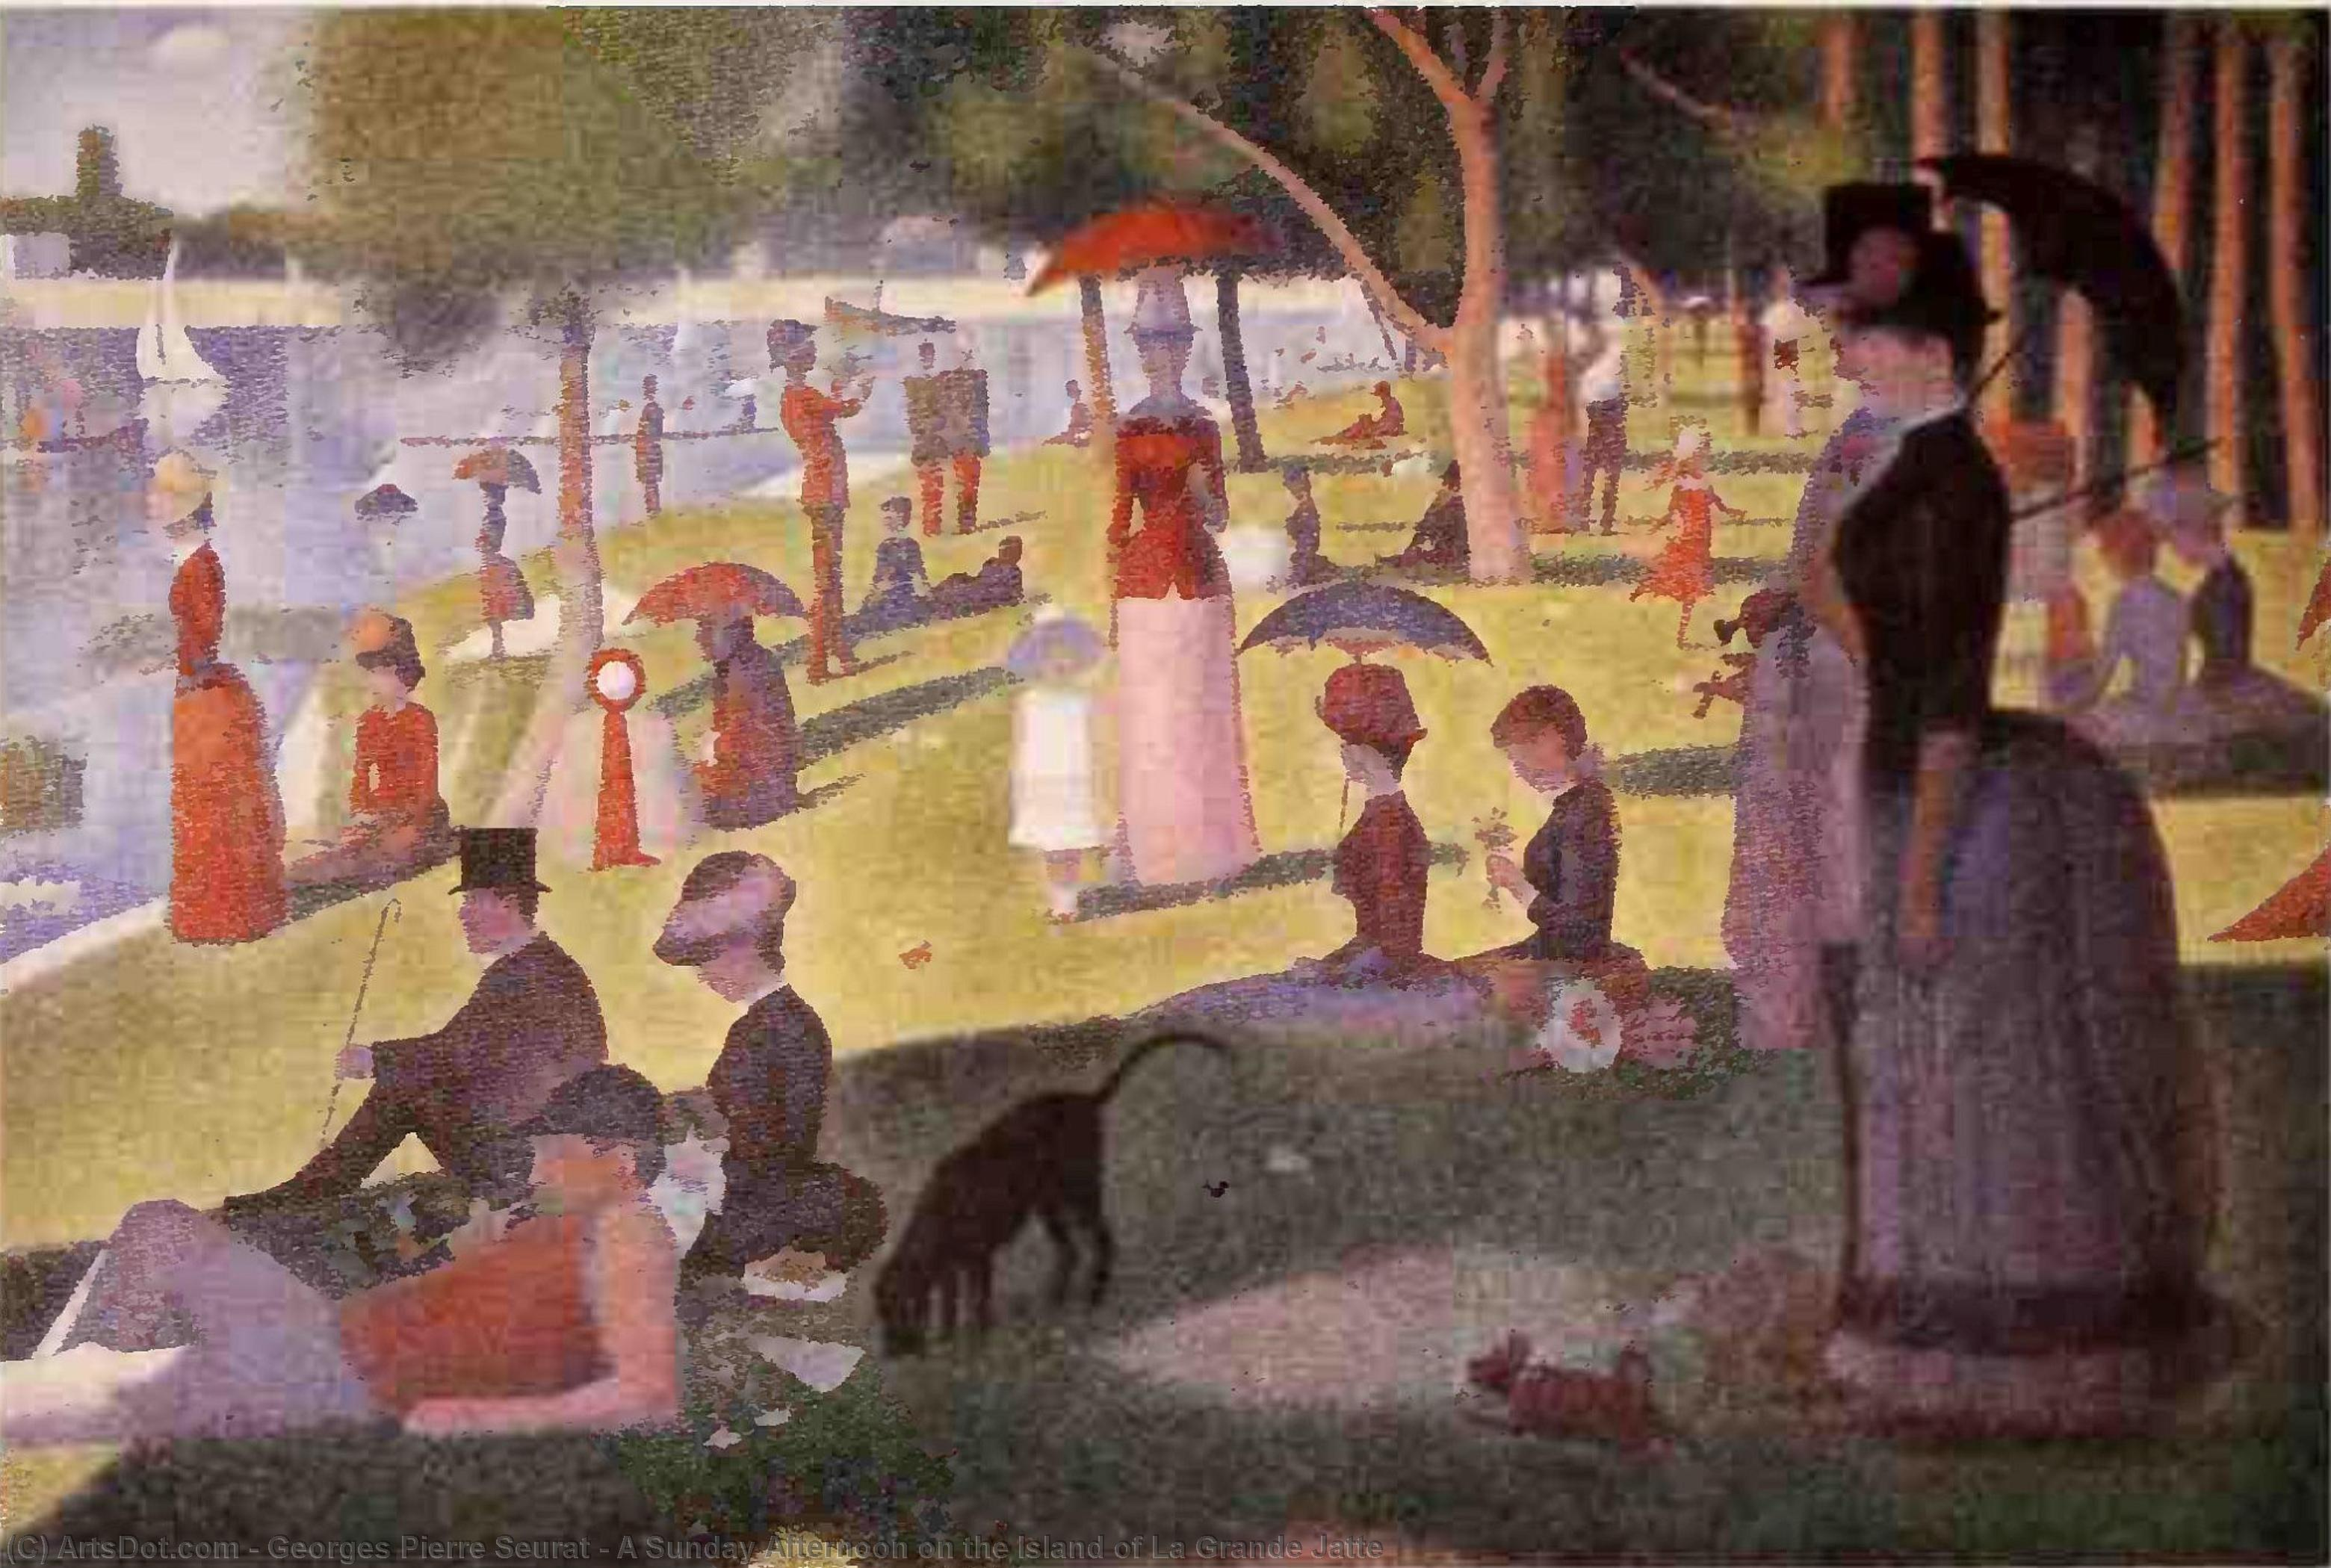 WikiOO.org - Encyclopedia of Fine Arts - Maľba, Artwork Georges Pierre Seurat - A Sunday Afternoon on the Island of La Grande Jatte